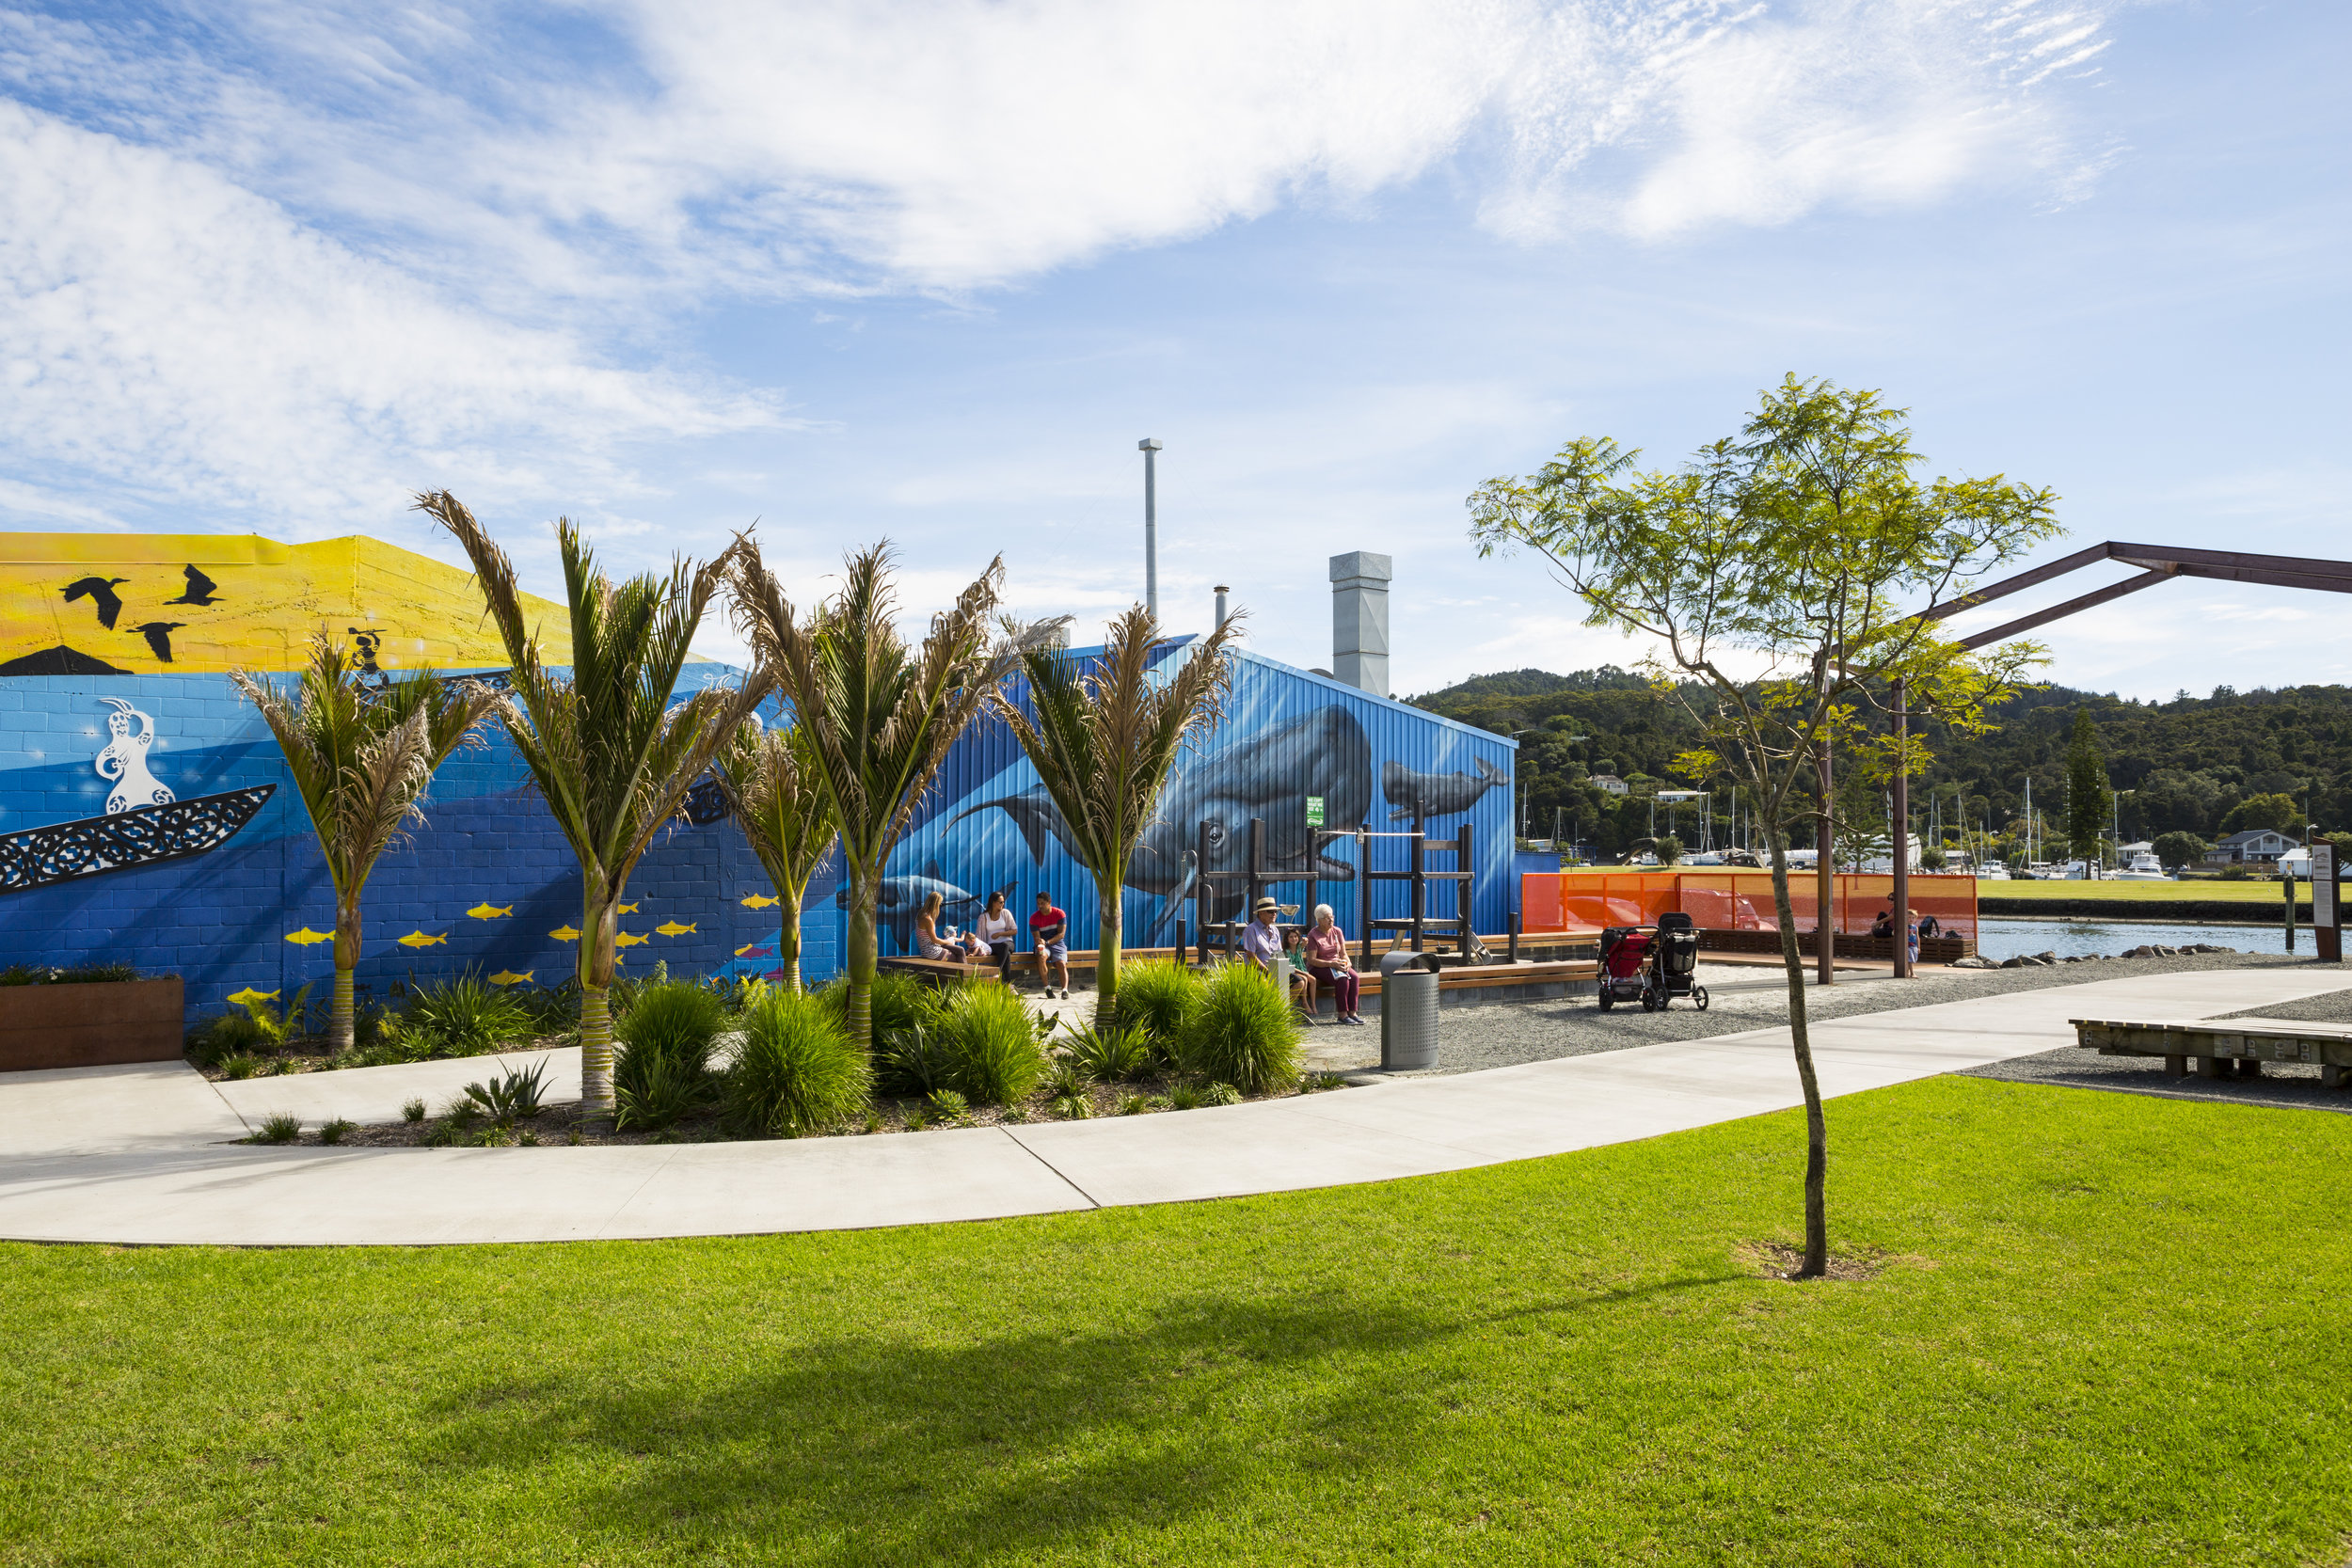 A popular space to relax, play & commute on the waterfront. Photo credit Doug Pearson.